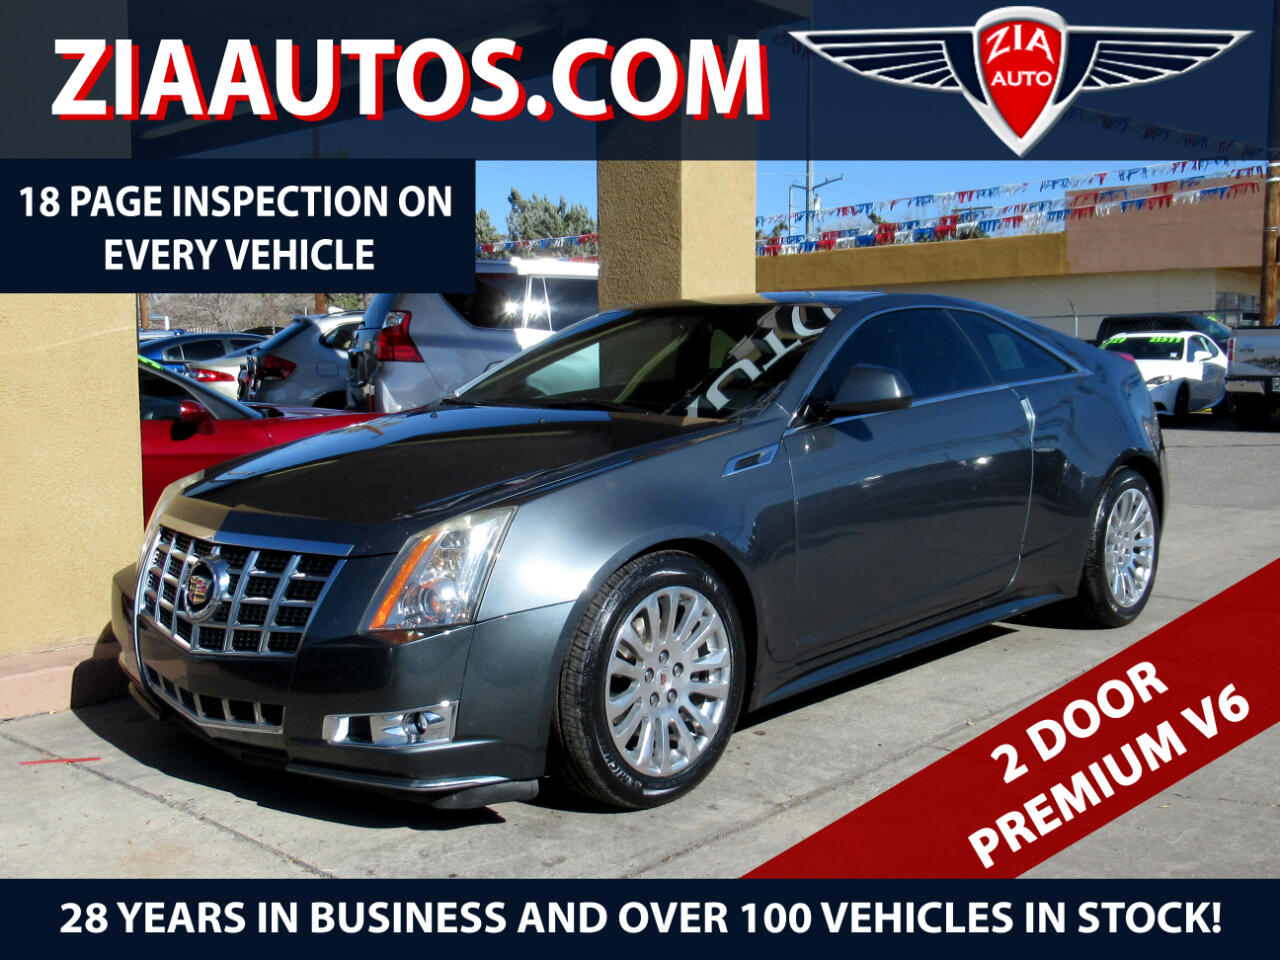 2013 Cadillac CTS Coupe 2dr Cpe Premium RWD